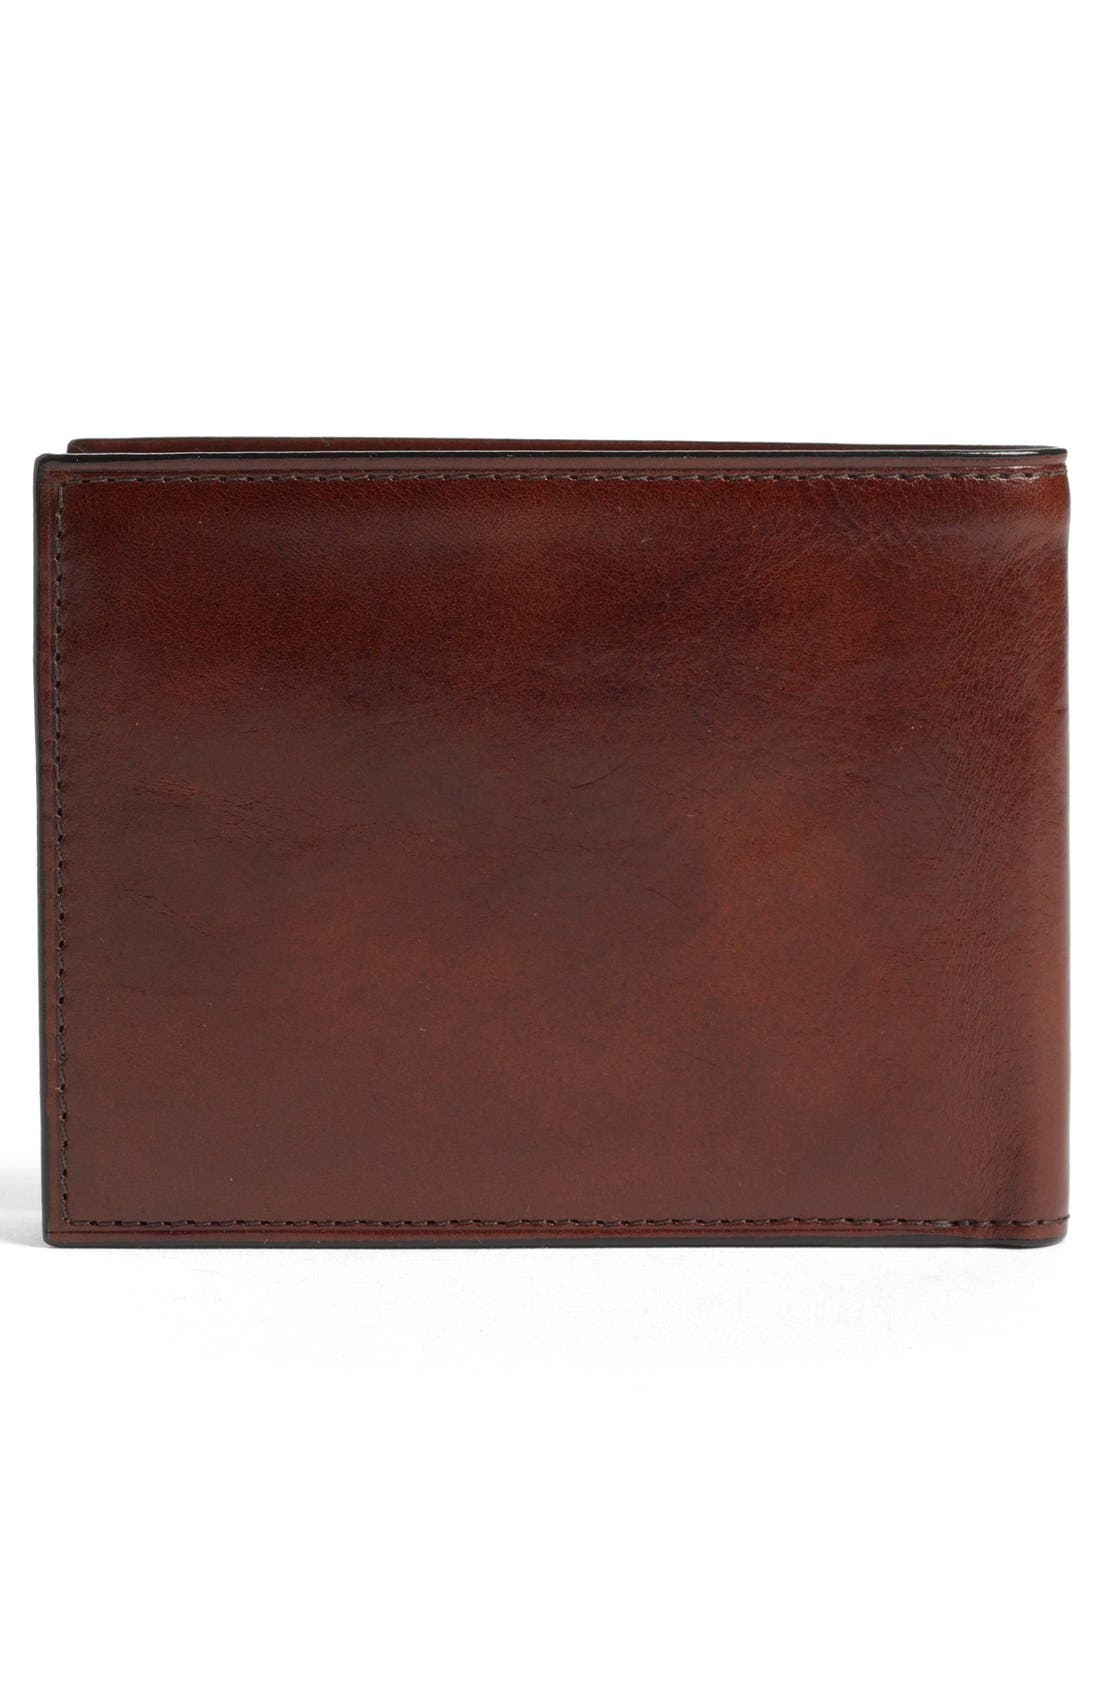 Alternate Image 3  - Bosca Leather Bifold Wallet